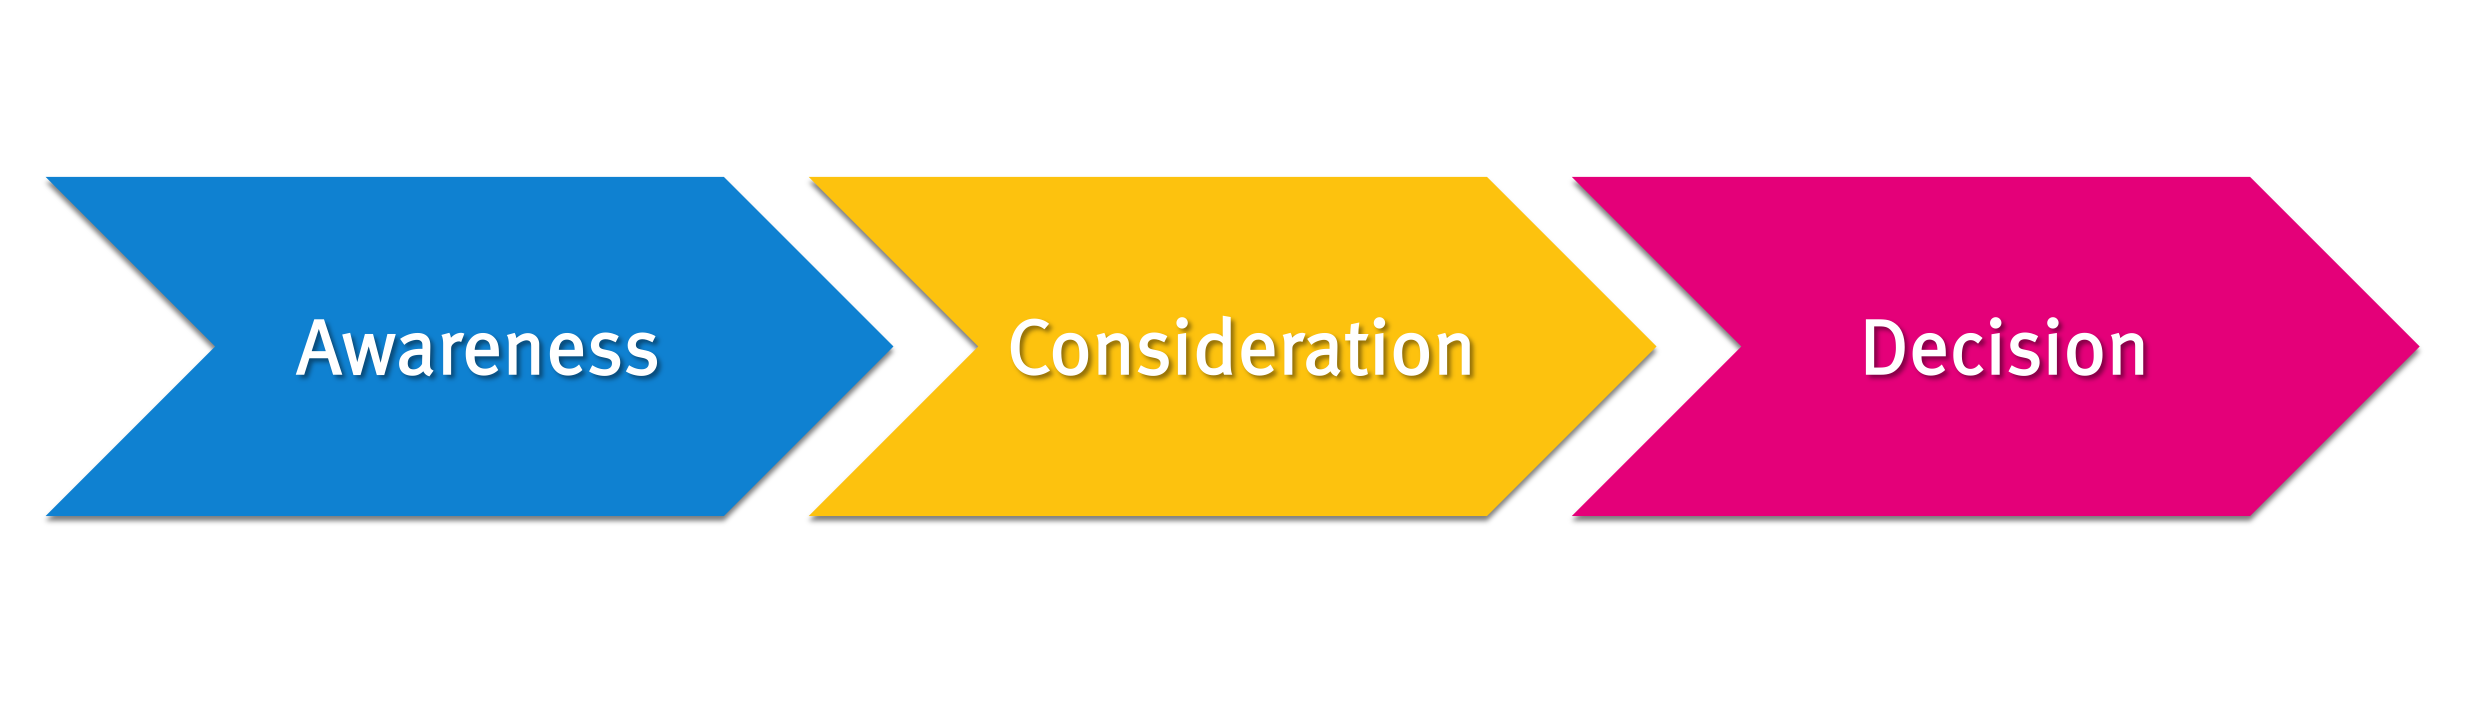 awareness-consideration-decision-graphic-inbound-arrows